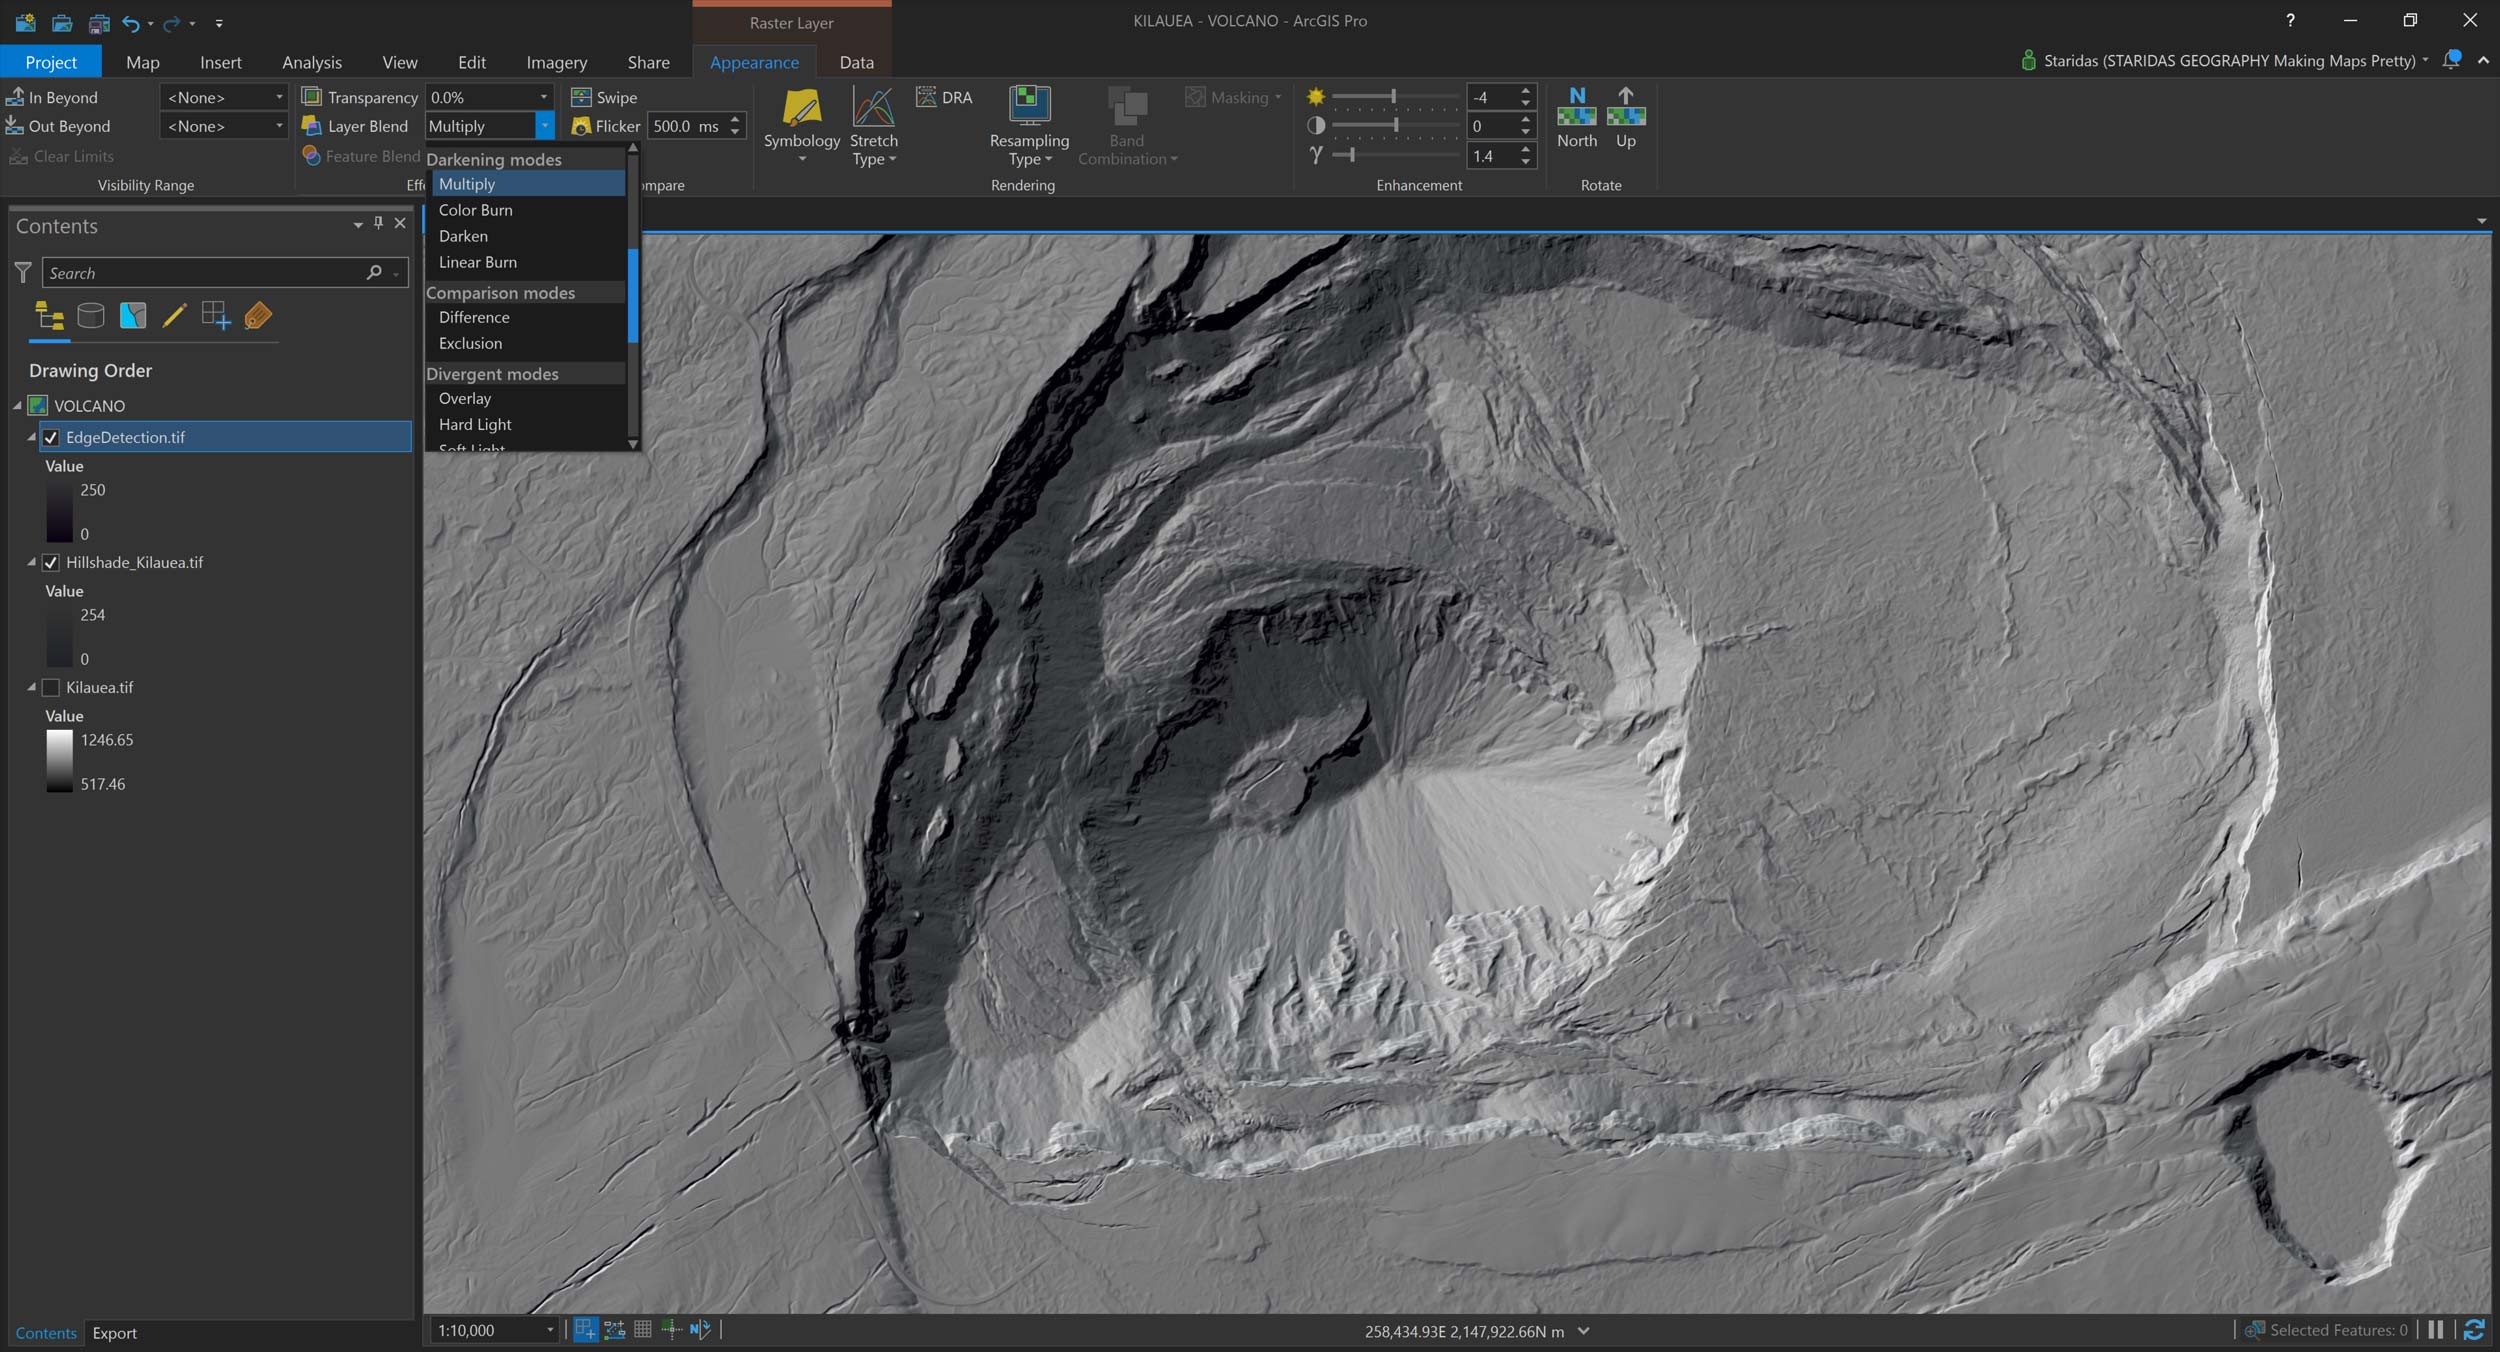 Picture 15: Blending the EdgeDetection and Hillshade rasters in ArcGIS Pro.